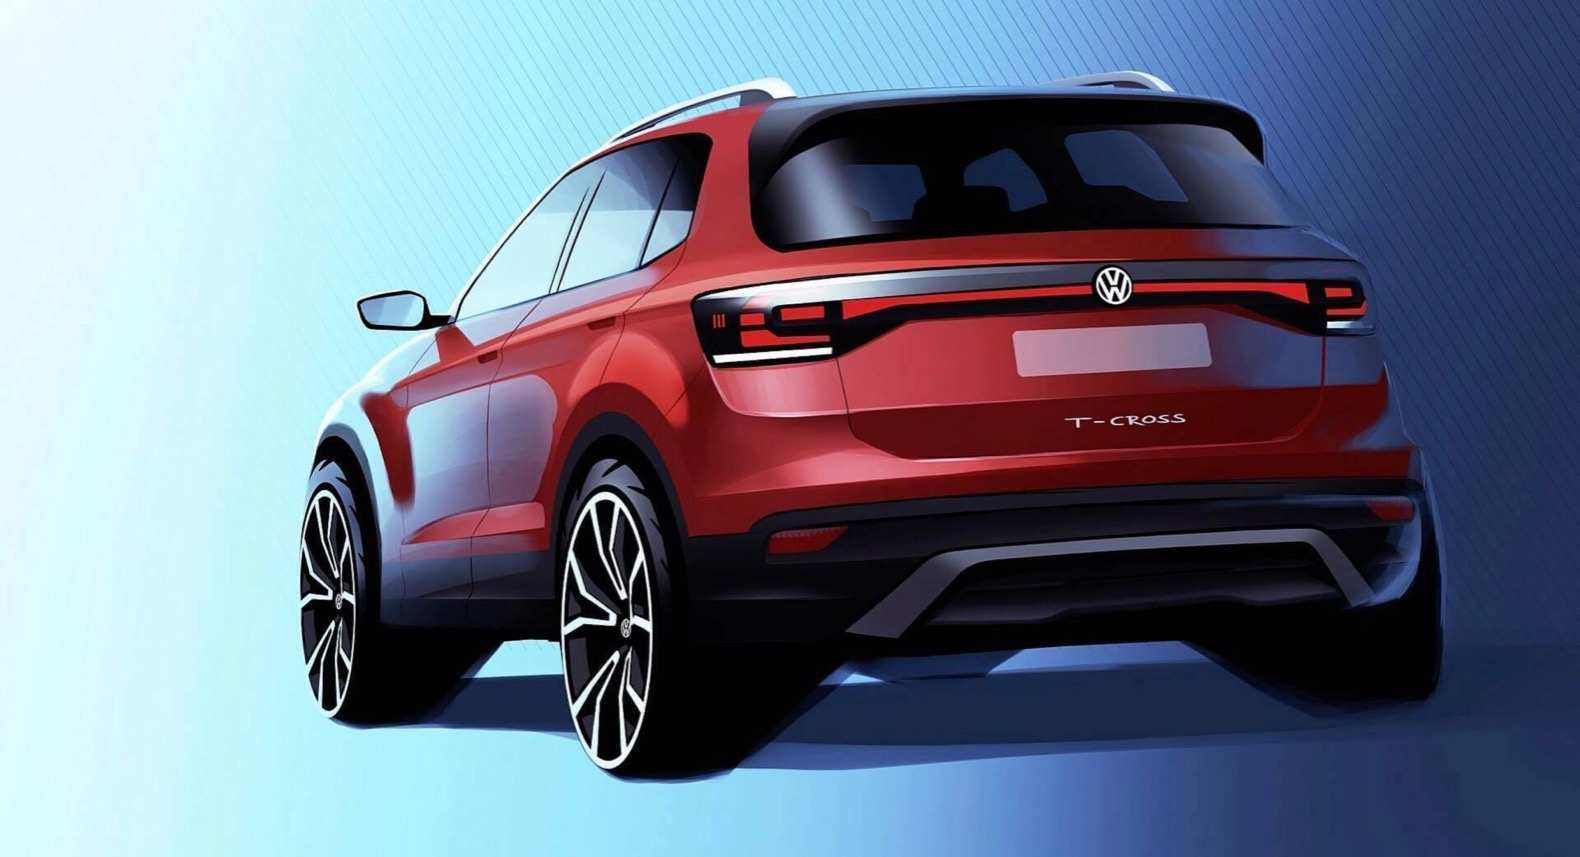 90 Great 2019 Volkswagen Crossover Prices with 2019 Volkswagen Crossover